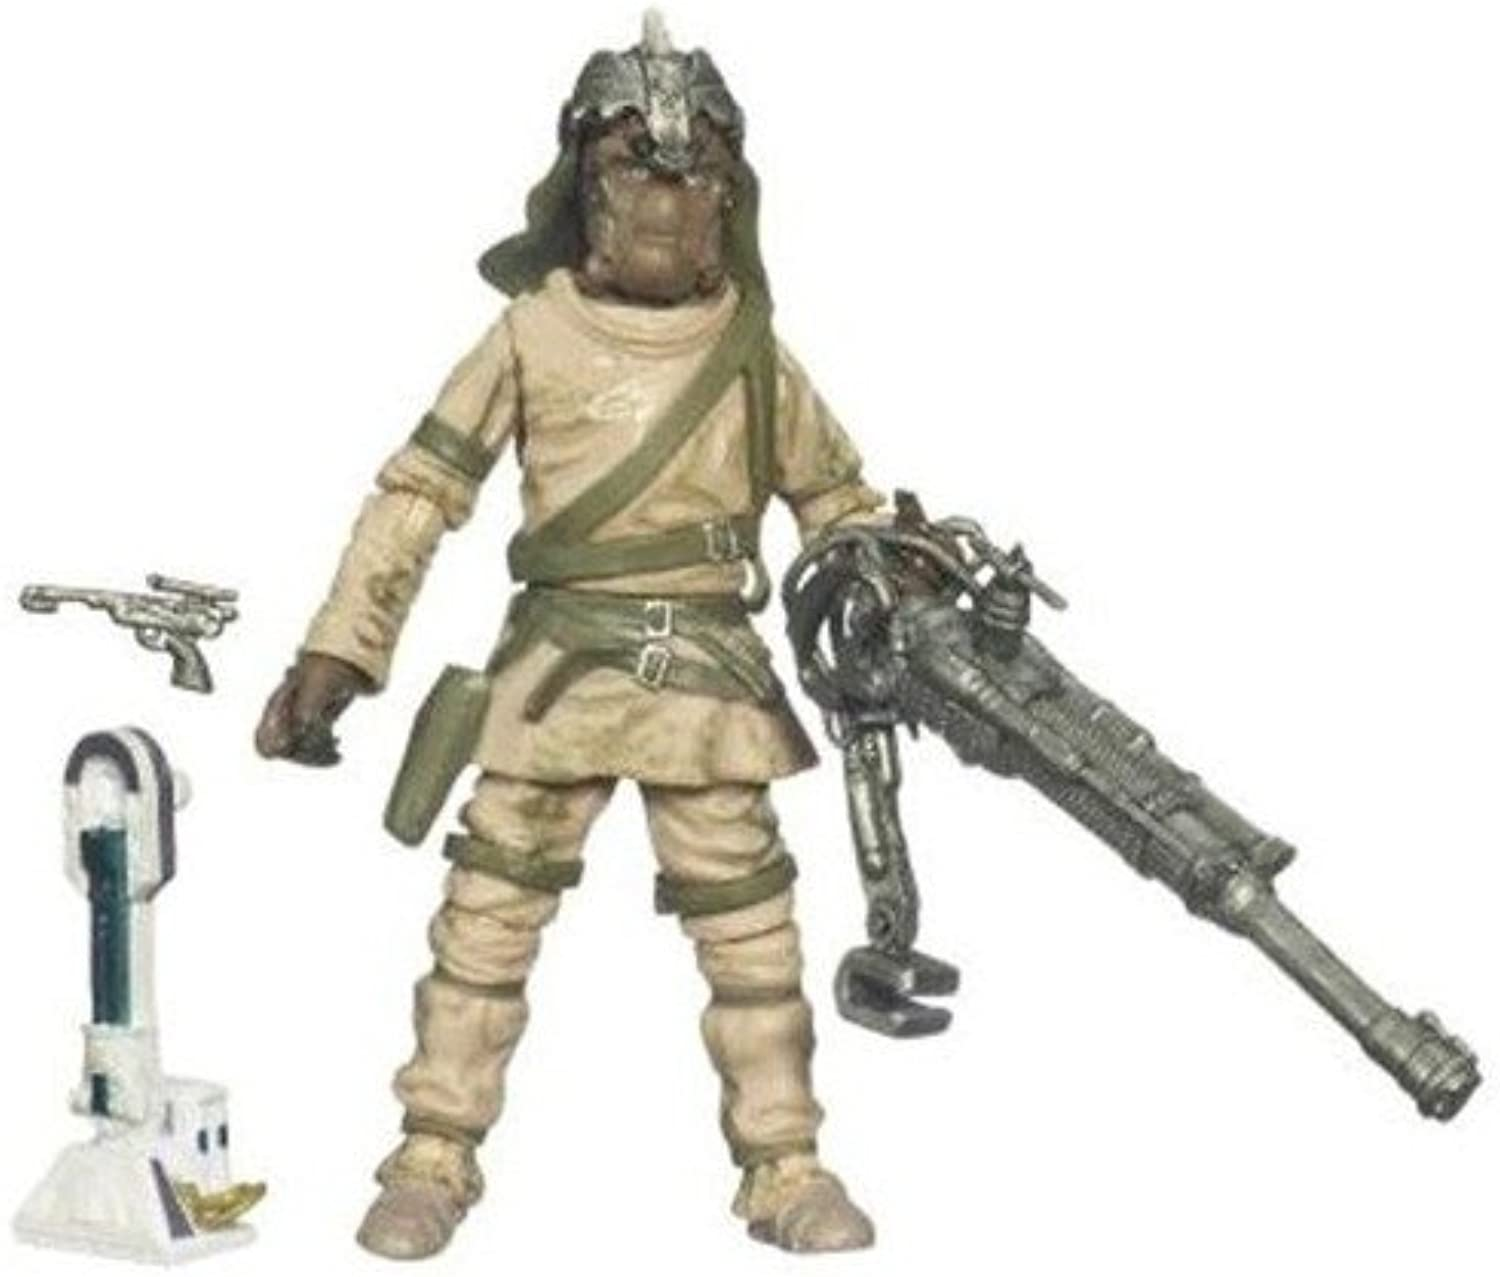 Hasbro Star Wars 2009 Legacy Collection BuildADroid Action Figure BD No. 23 Nikto Gunner